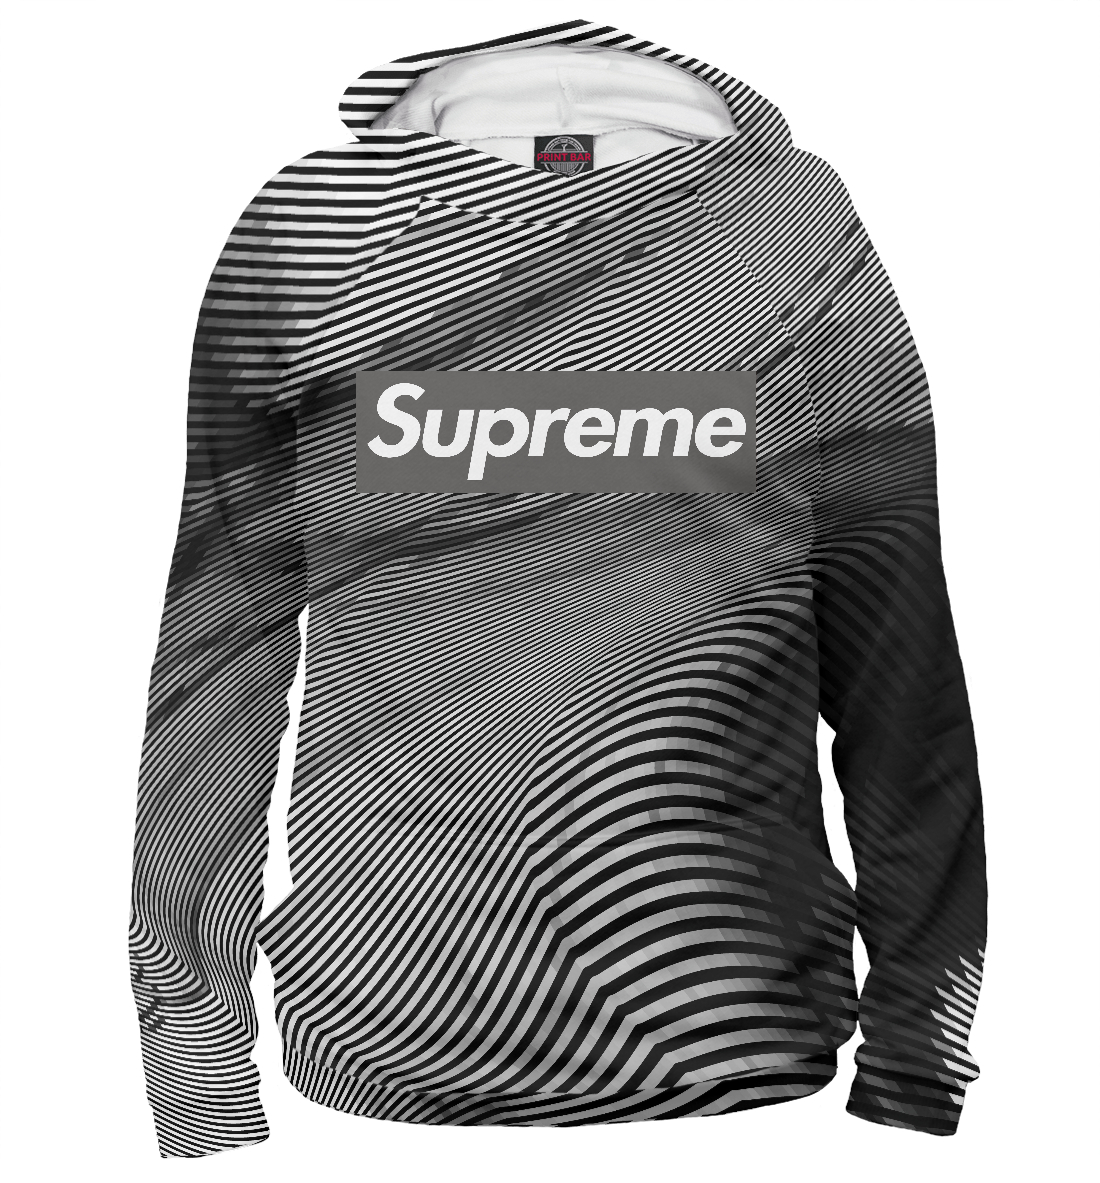 Купить Supreme Grey Abstract, Printbar, Худи, SPR-884027-hud-2